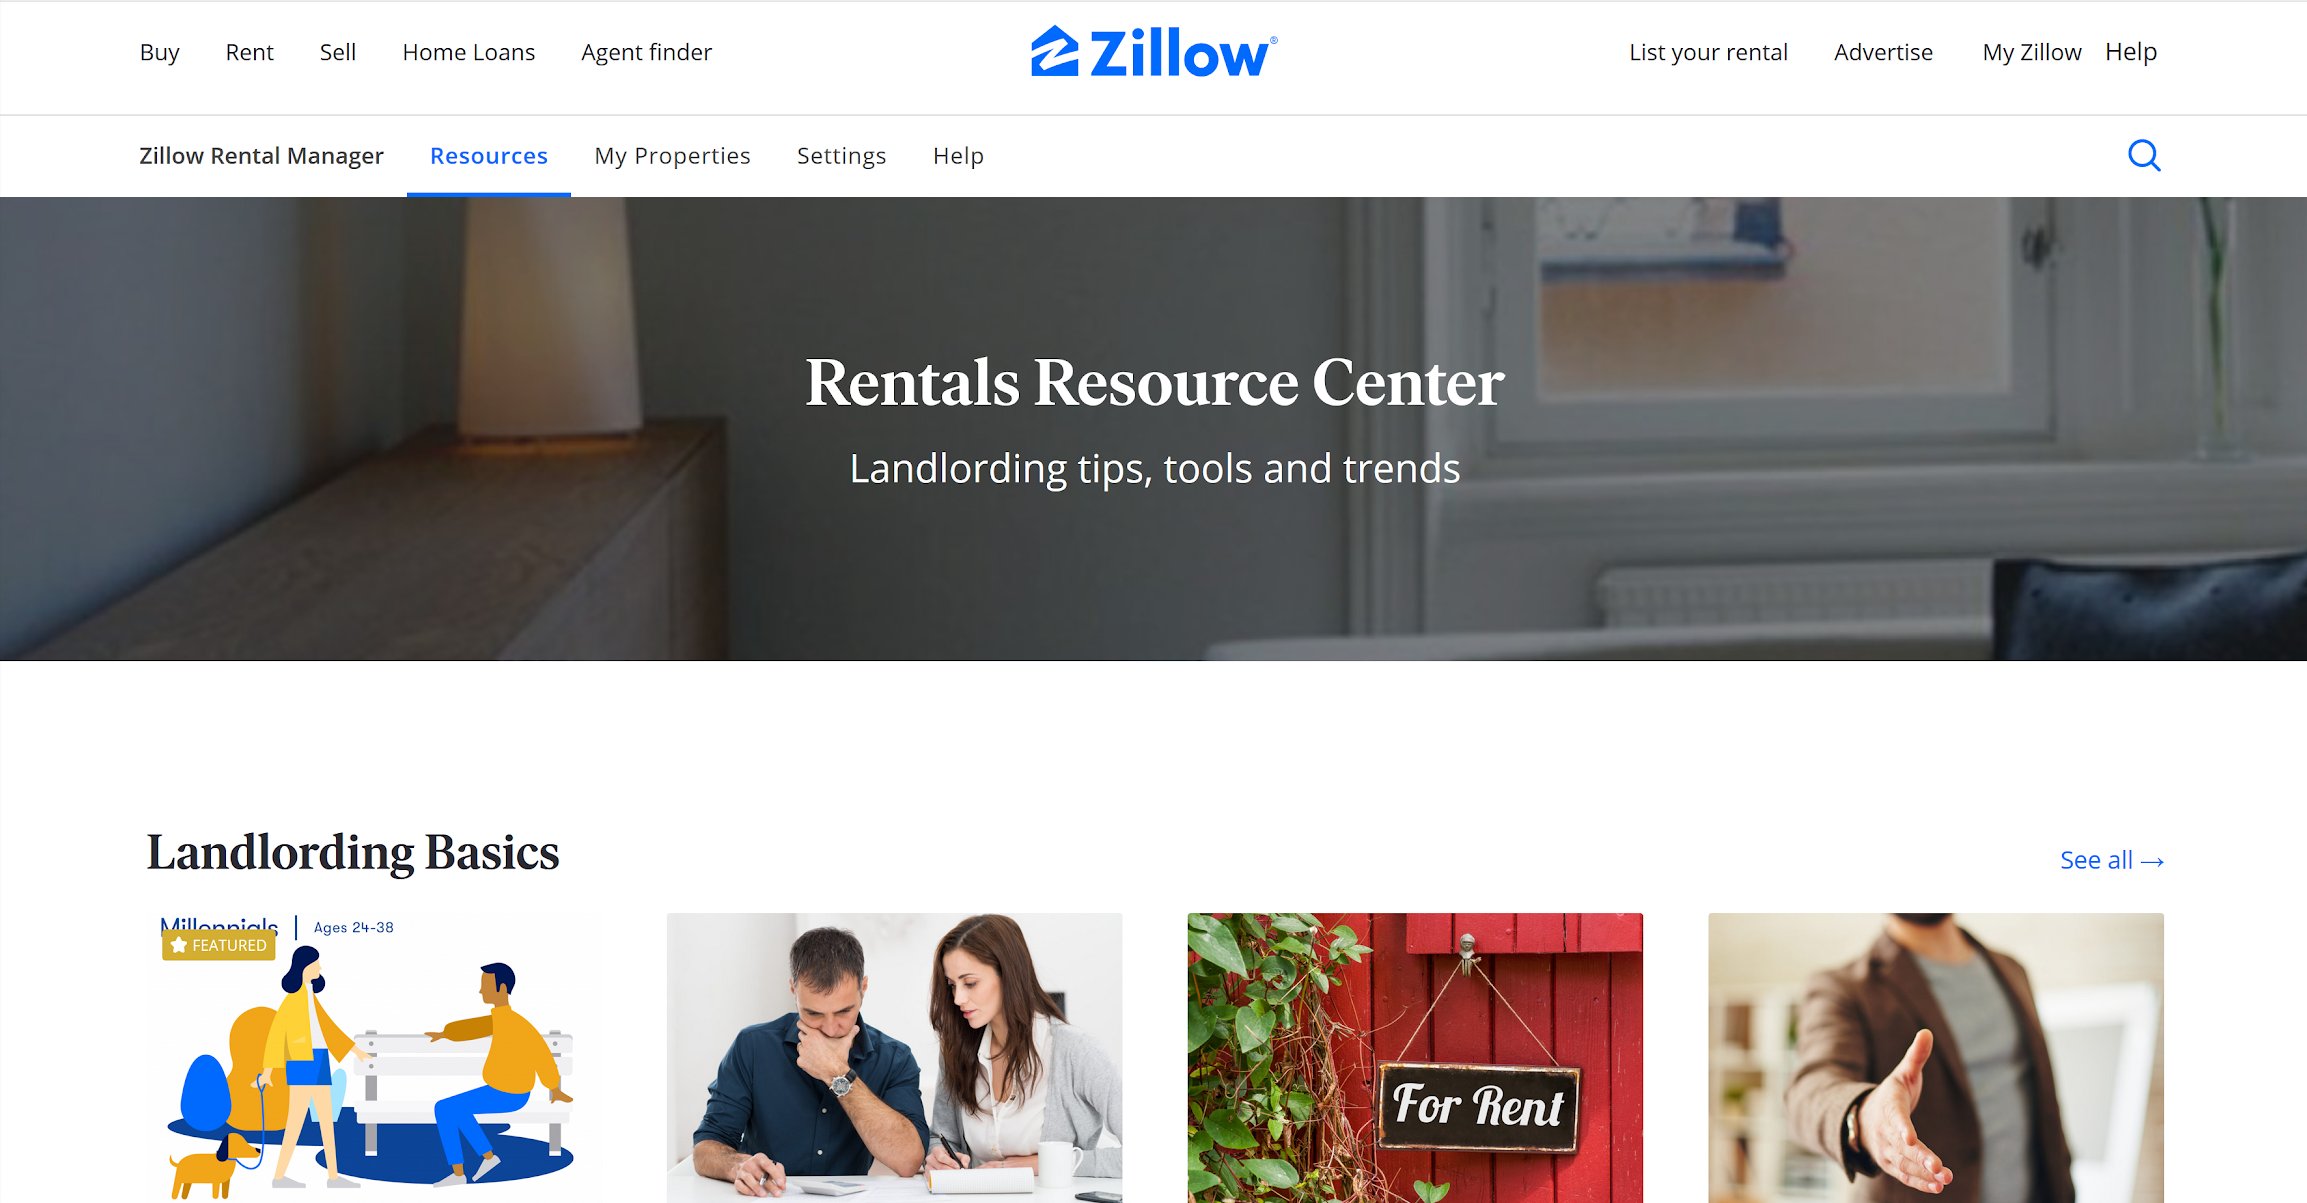 zillow rental manager info-graphic